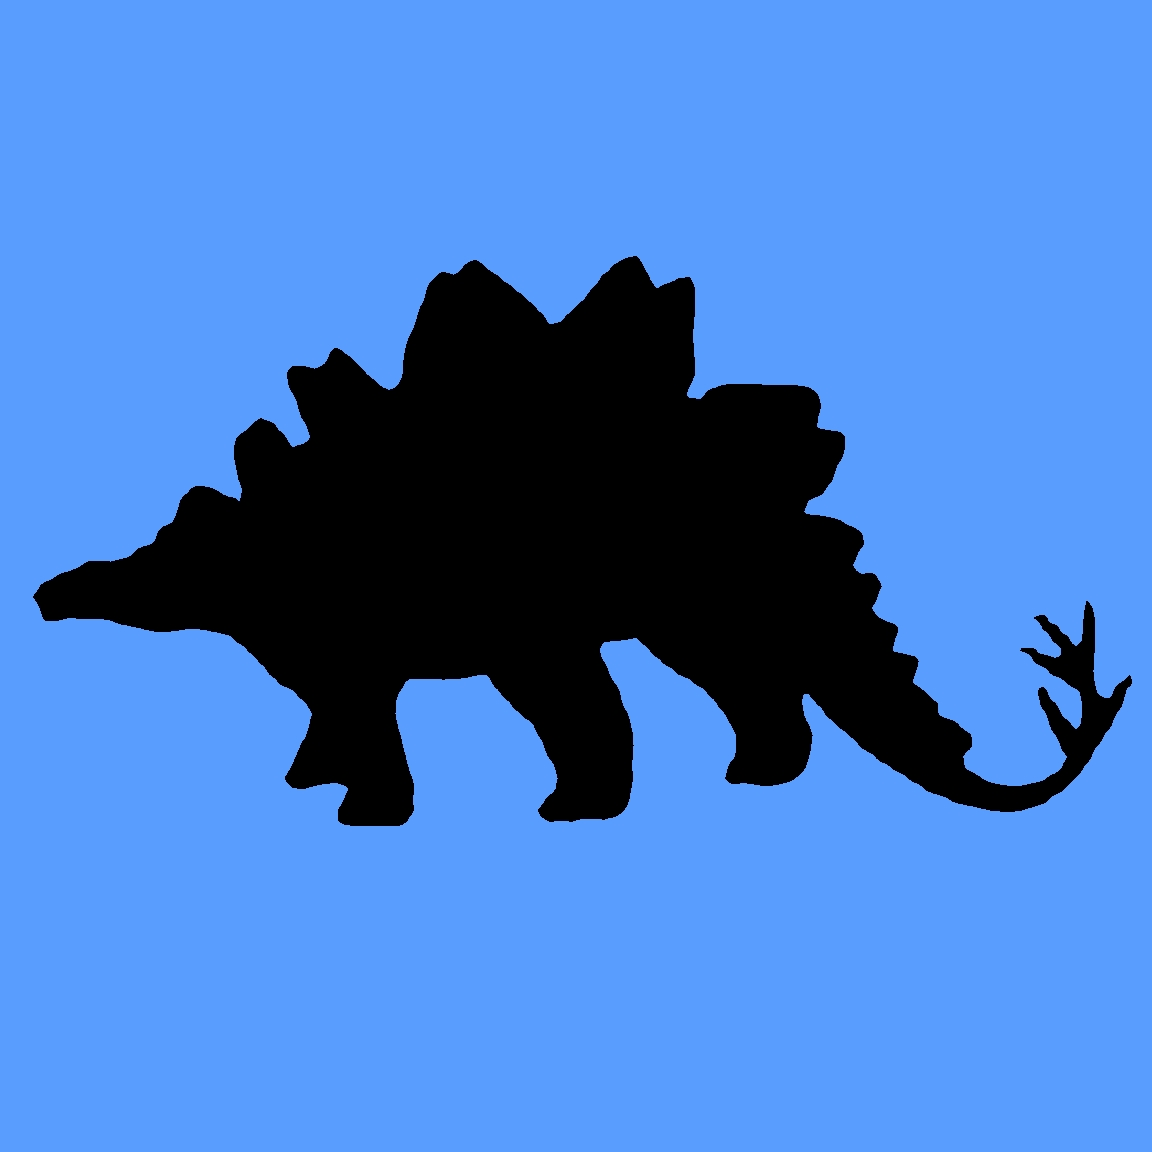 Dinosaur Wall Art   Boys Bedroom Or Nursery Part 37